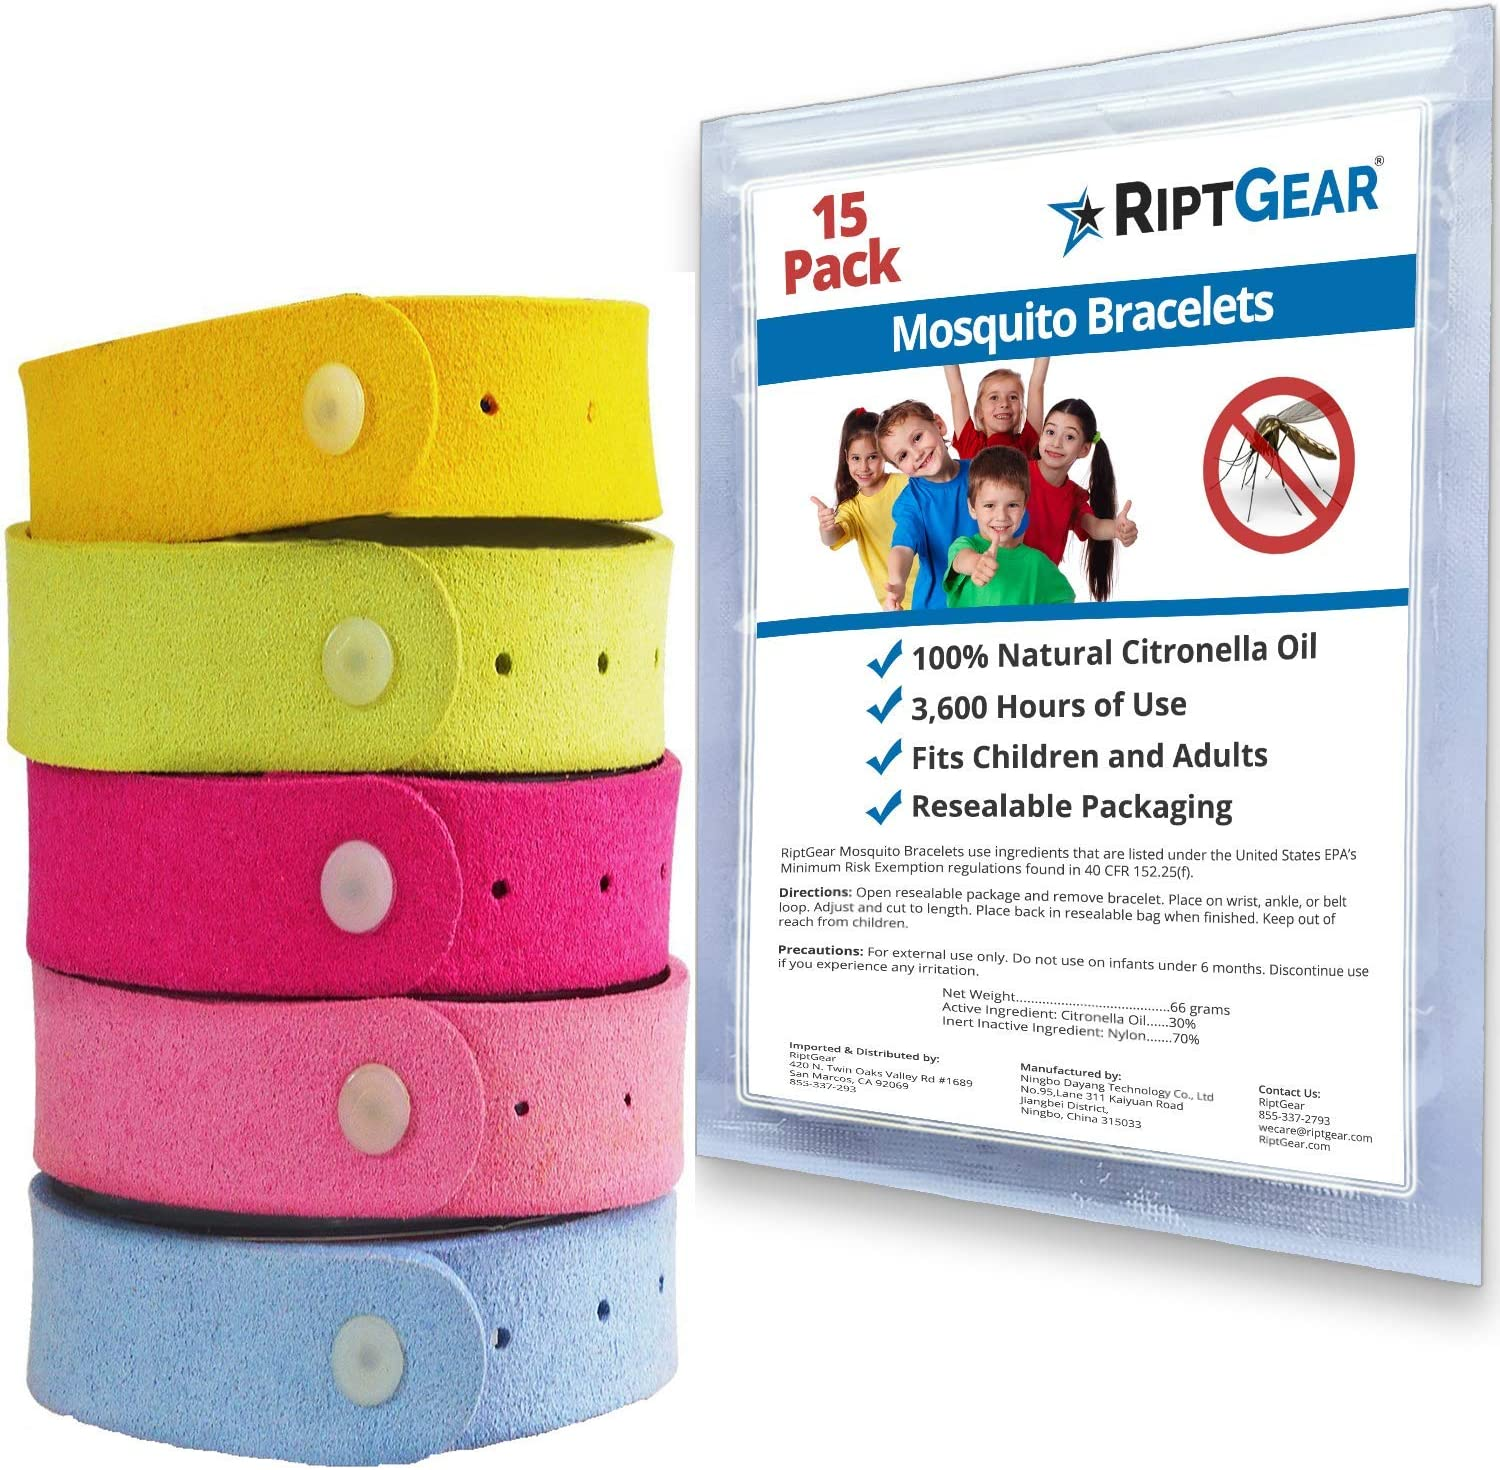 Mosquito Repellent Bracelet (15 Pack) for Kids and Adults - Better Than Spray Lotion or Wipes - Travel Mosquito Bracelets - Natural and Deet Free